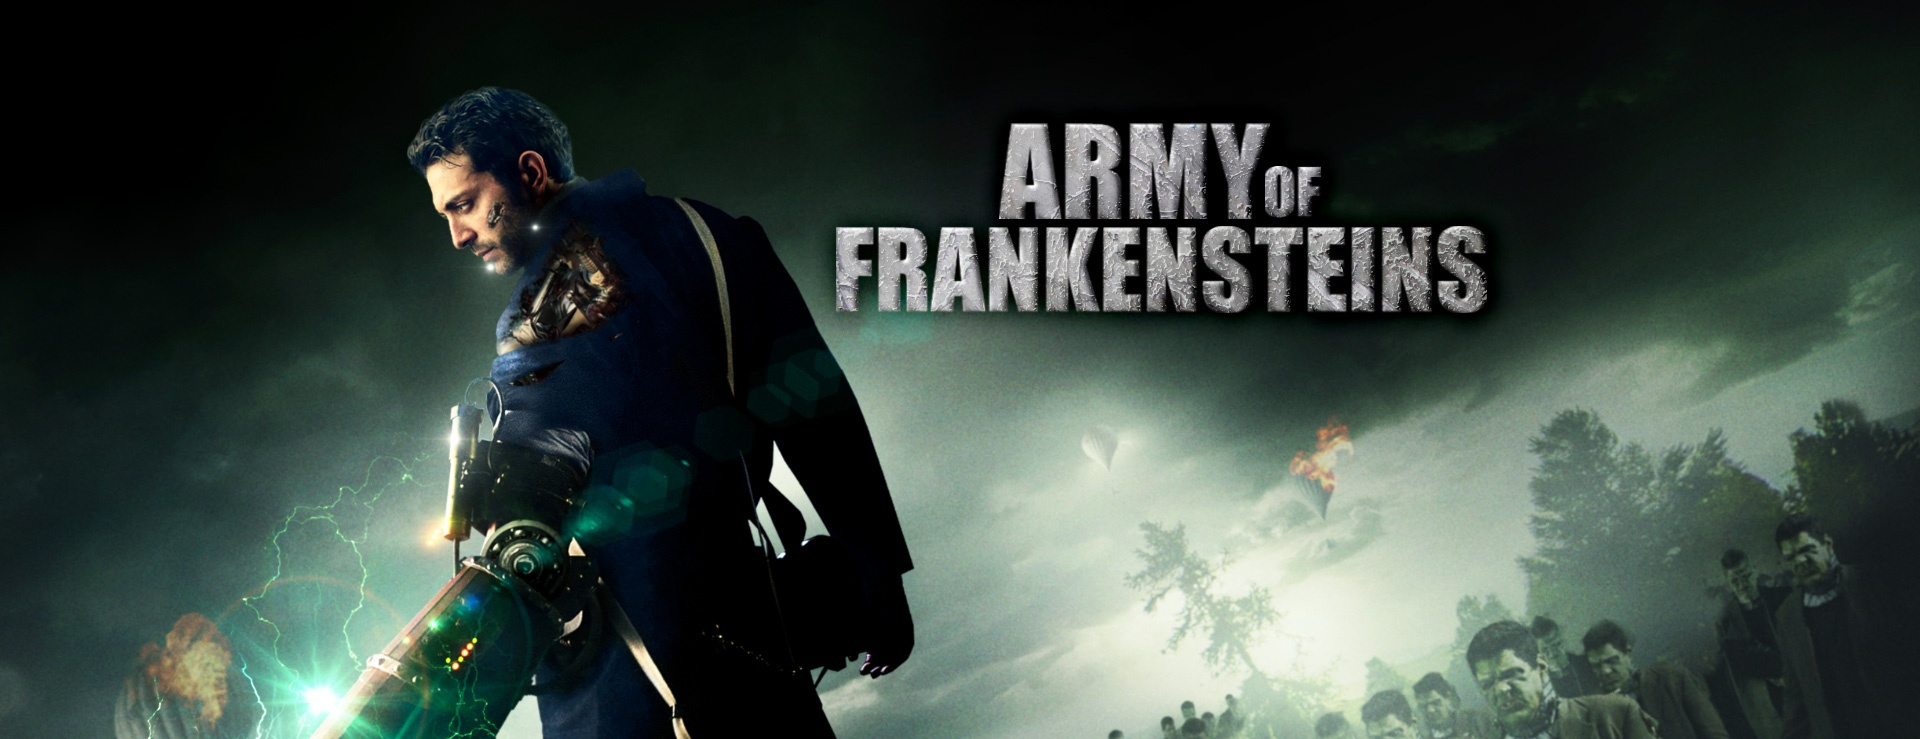 ArmyOfFrankenstein_Hero